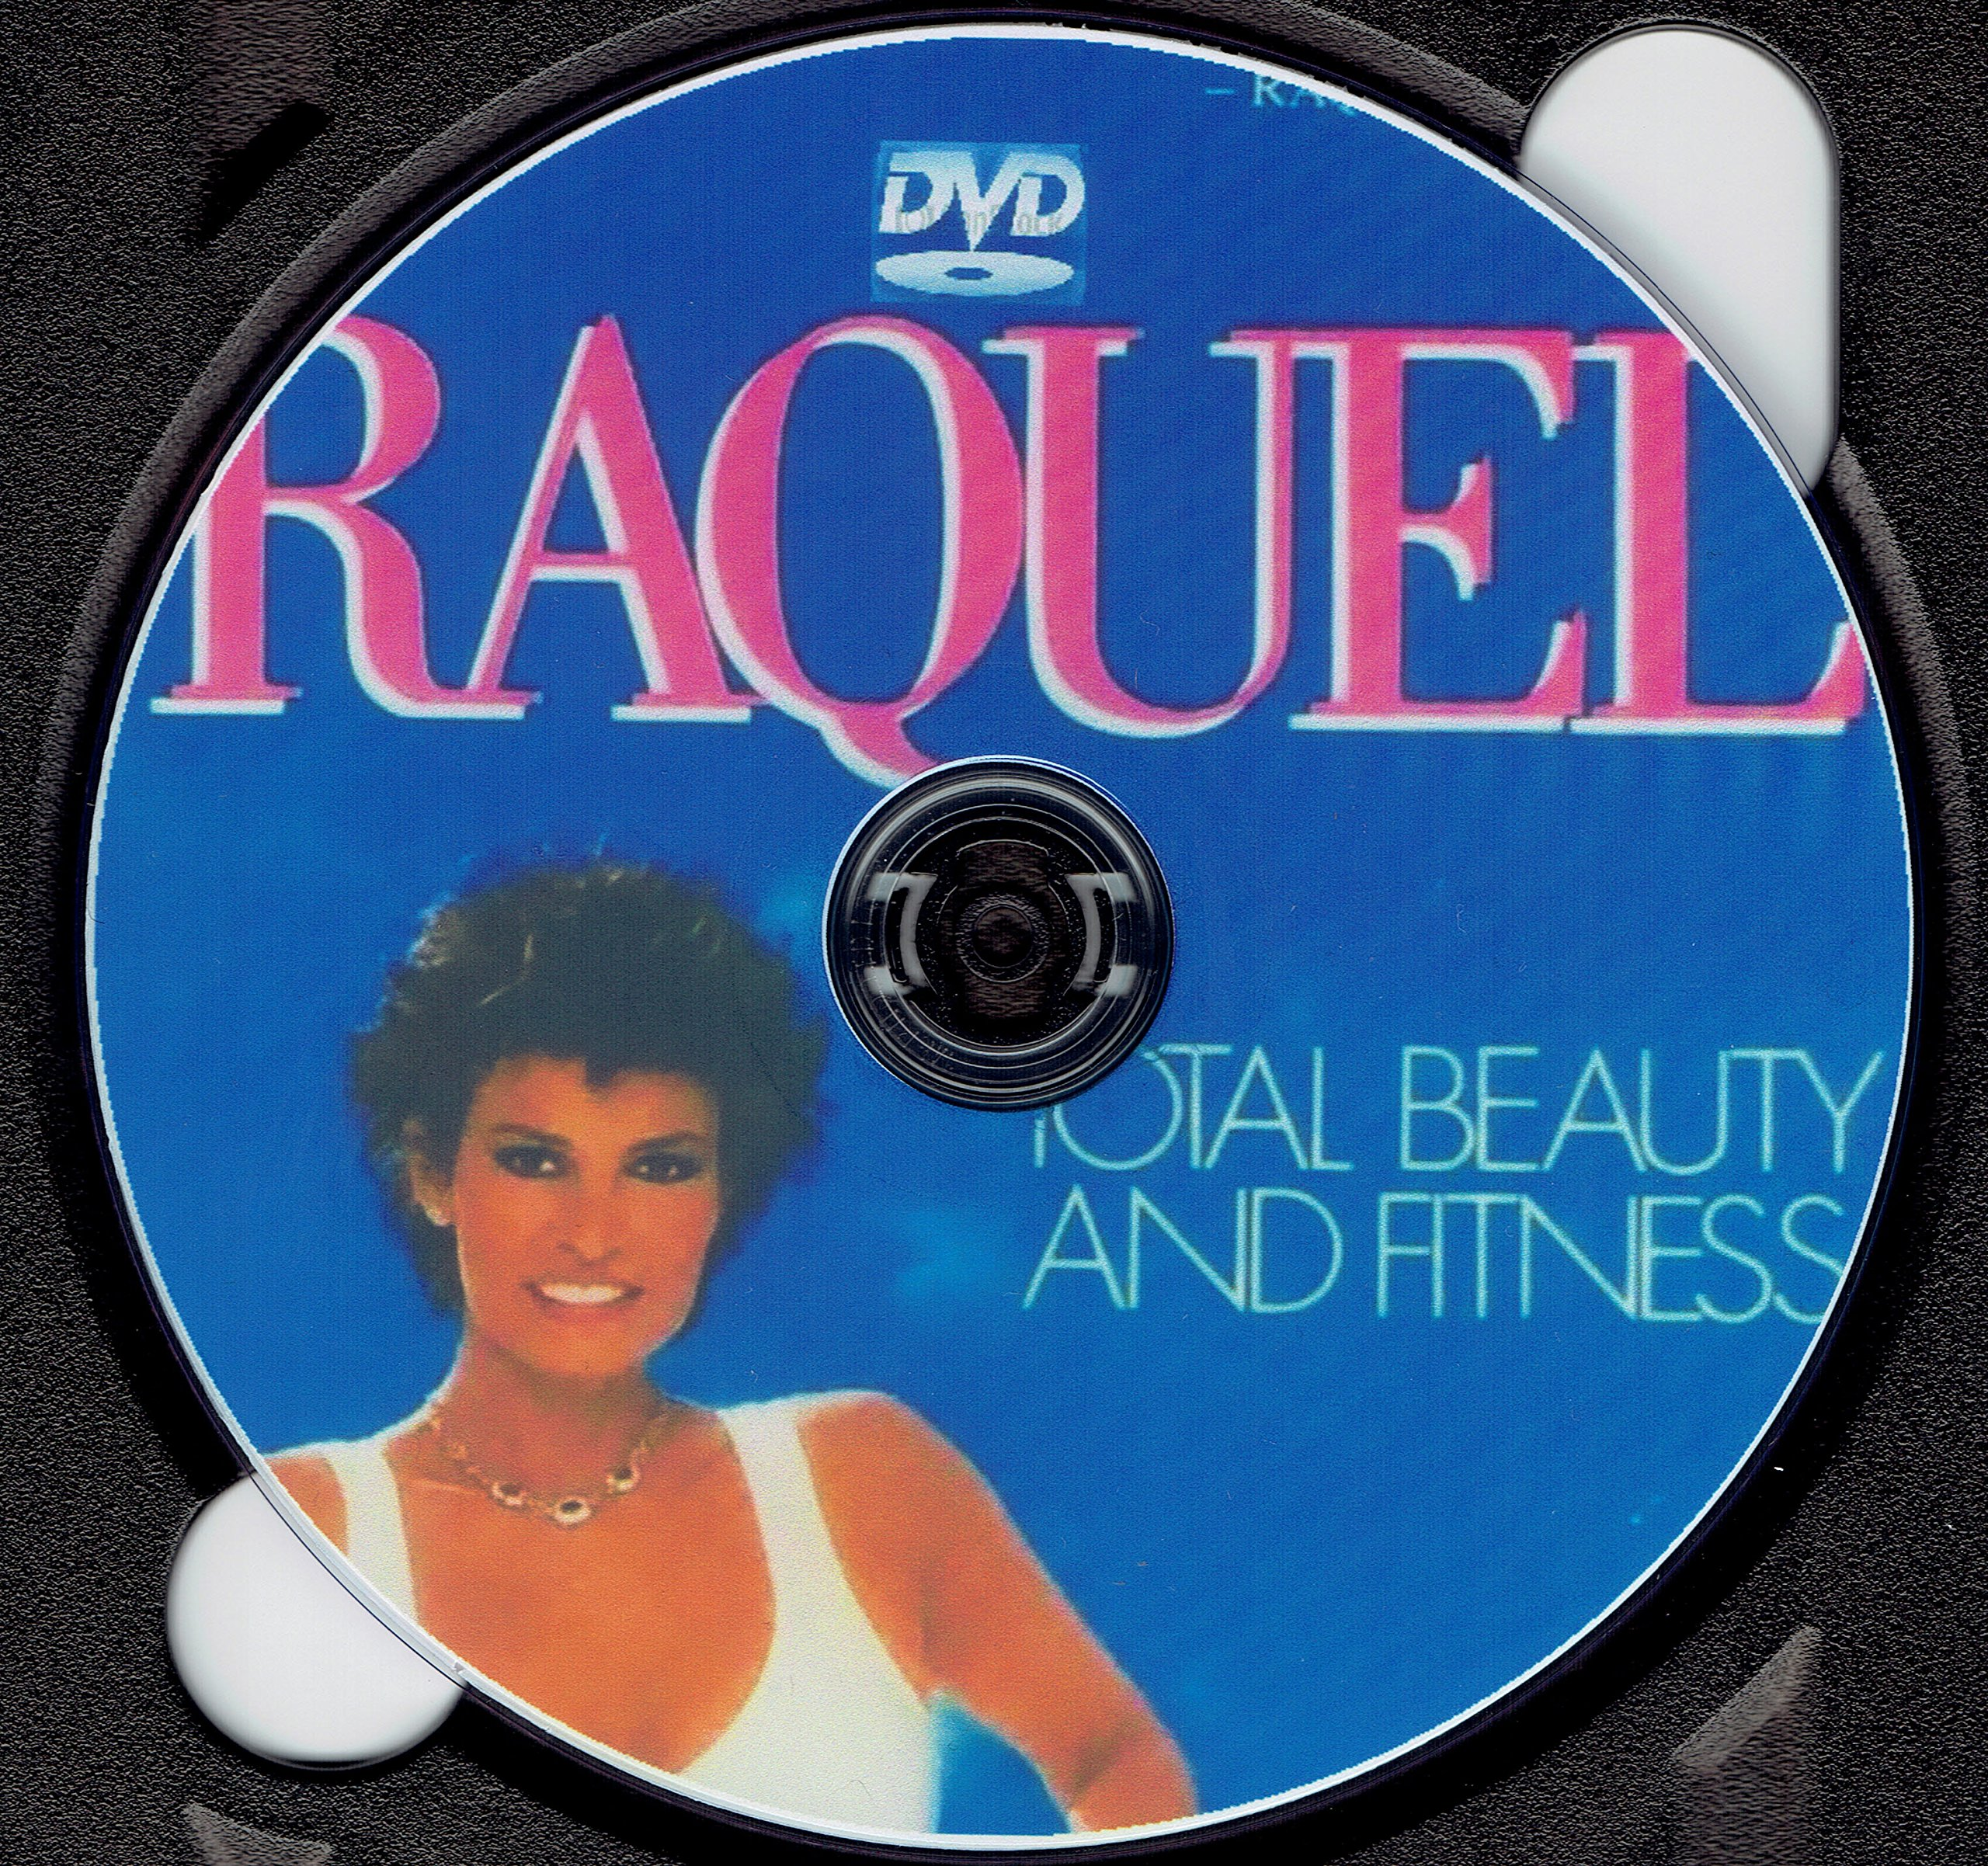 Raquel: Total Beauty and Fitness [VHS] by Raquel: Total Beauty and Fitness DVD